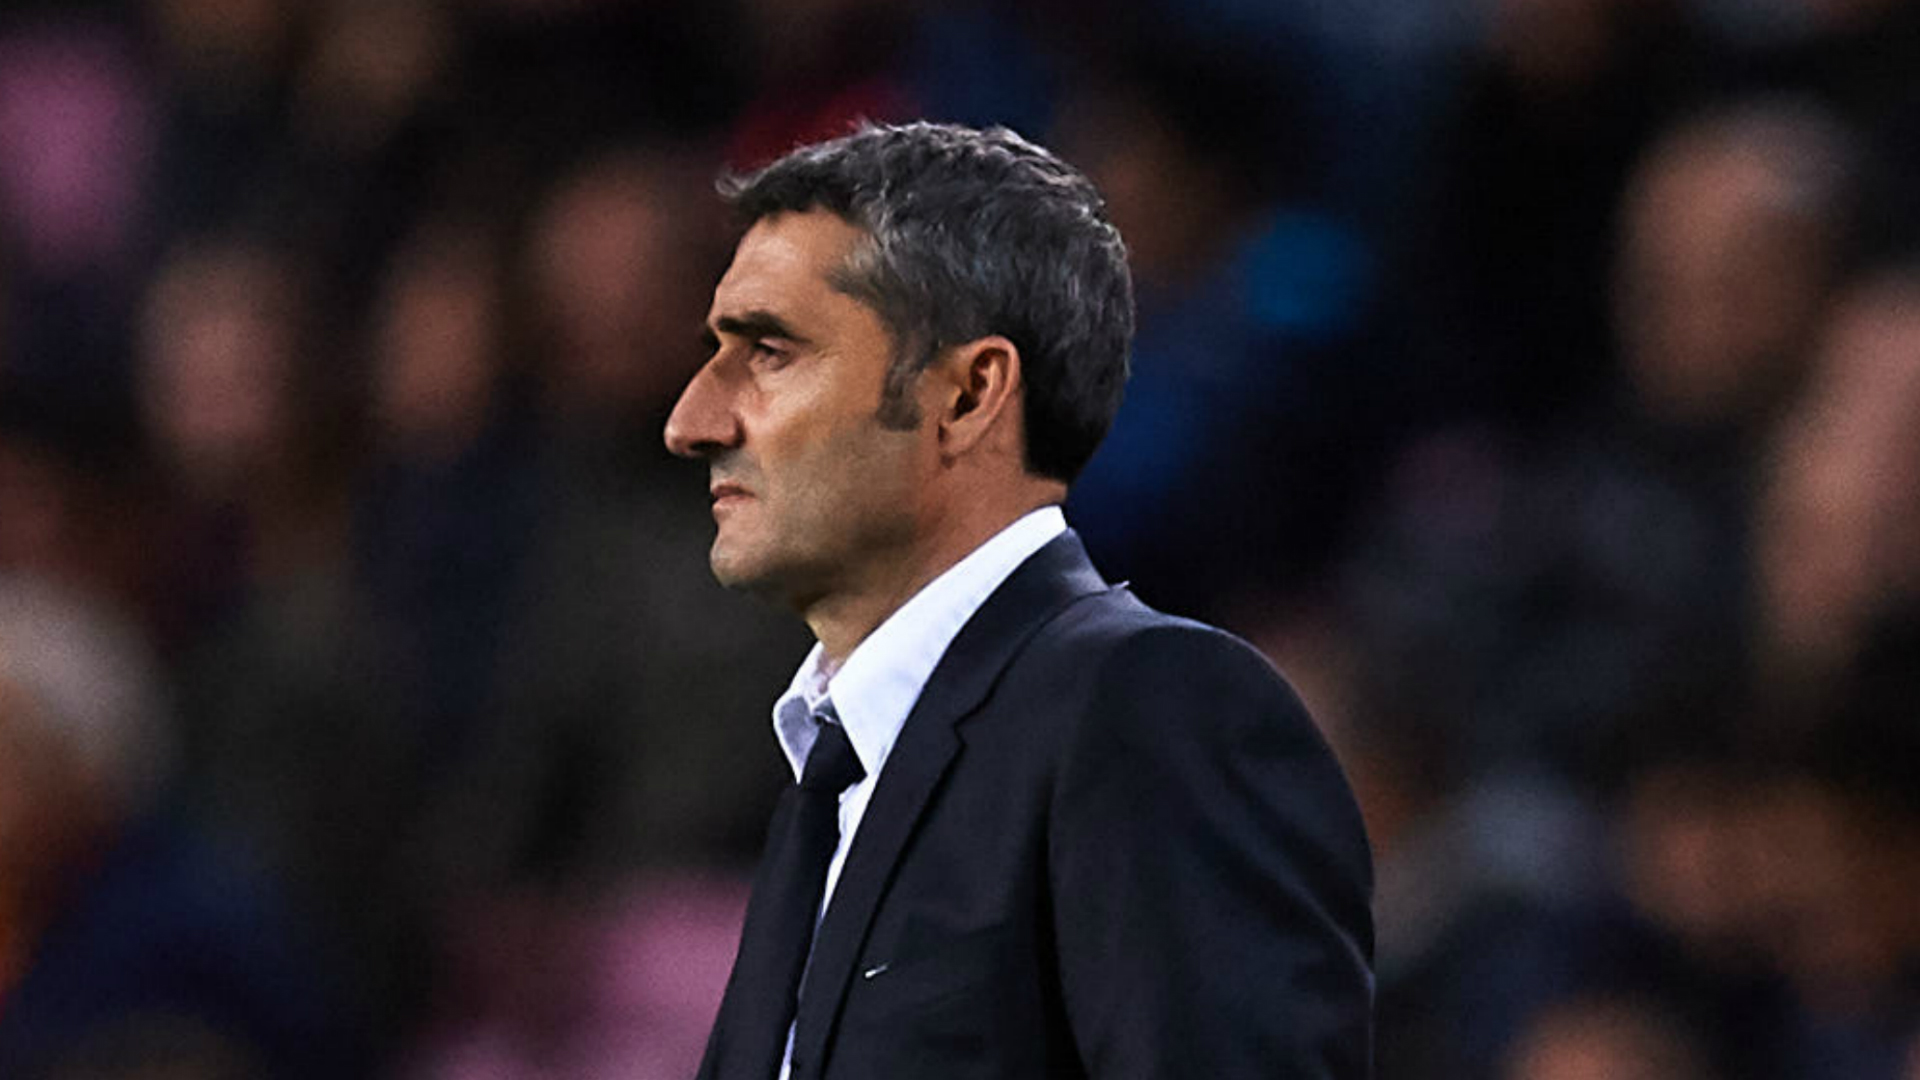 Barcelona are behind Valverde, insists Abidal